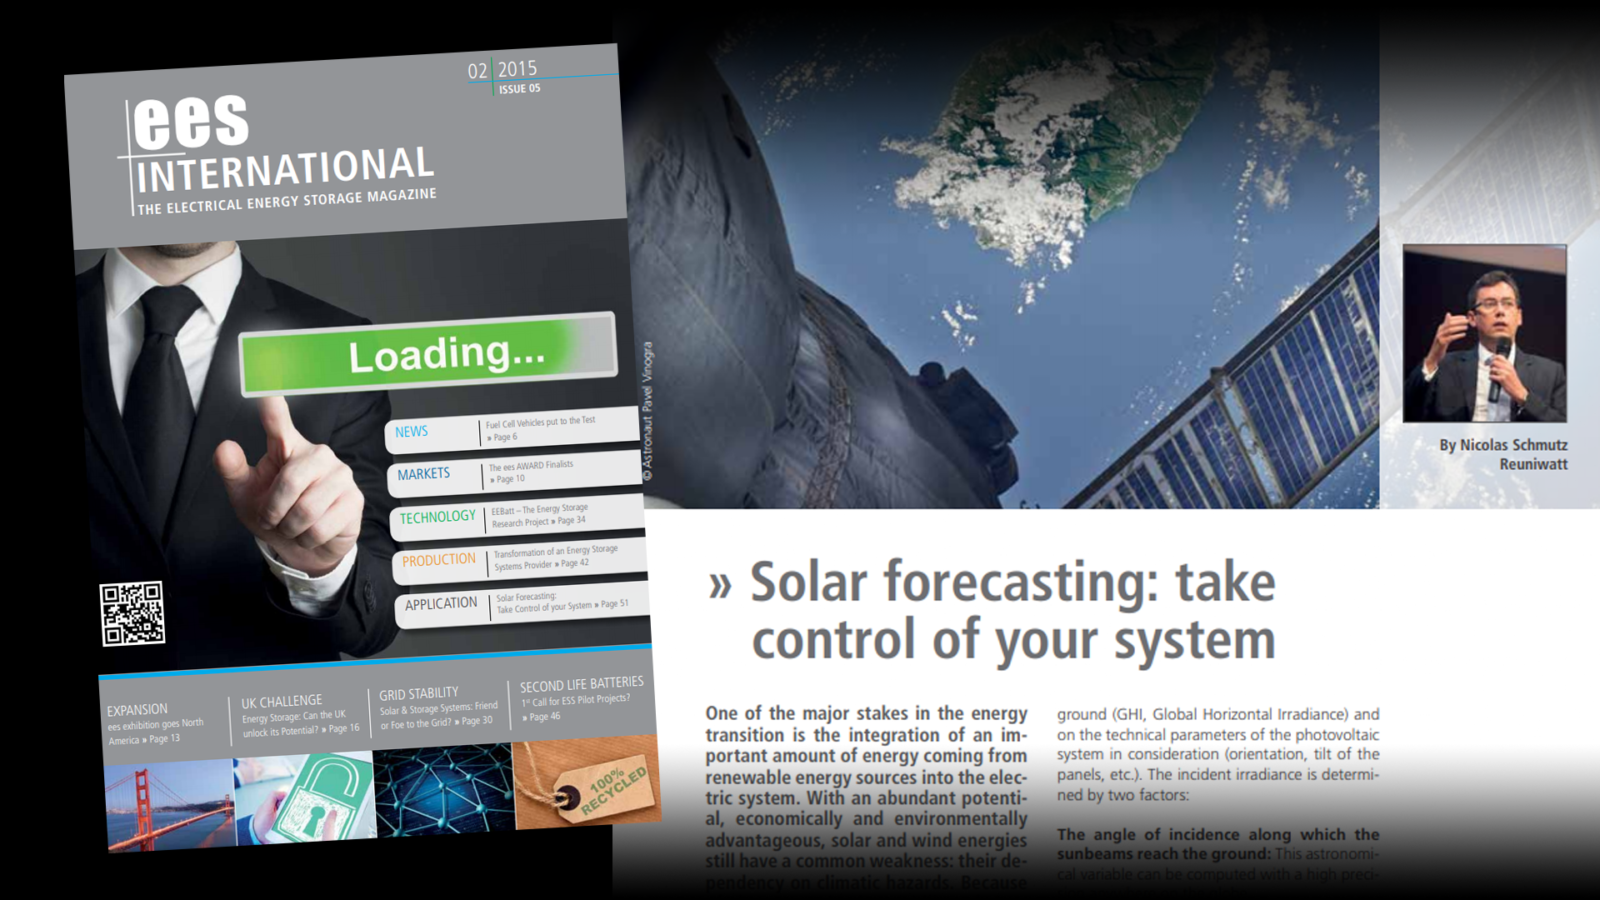 Solar forecasting: take control of your system, in EES Intl. Magazine